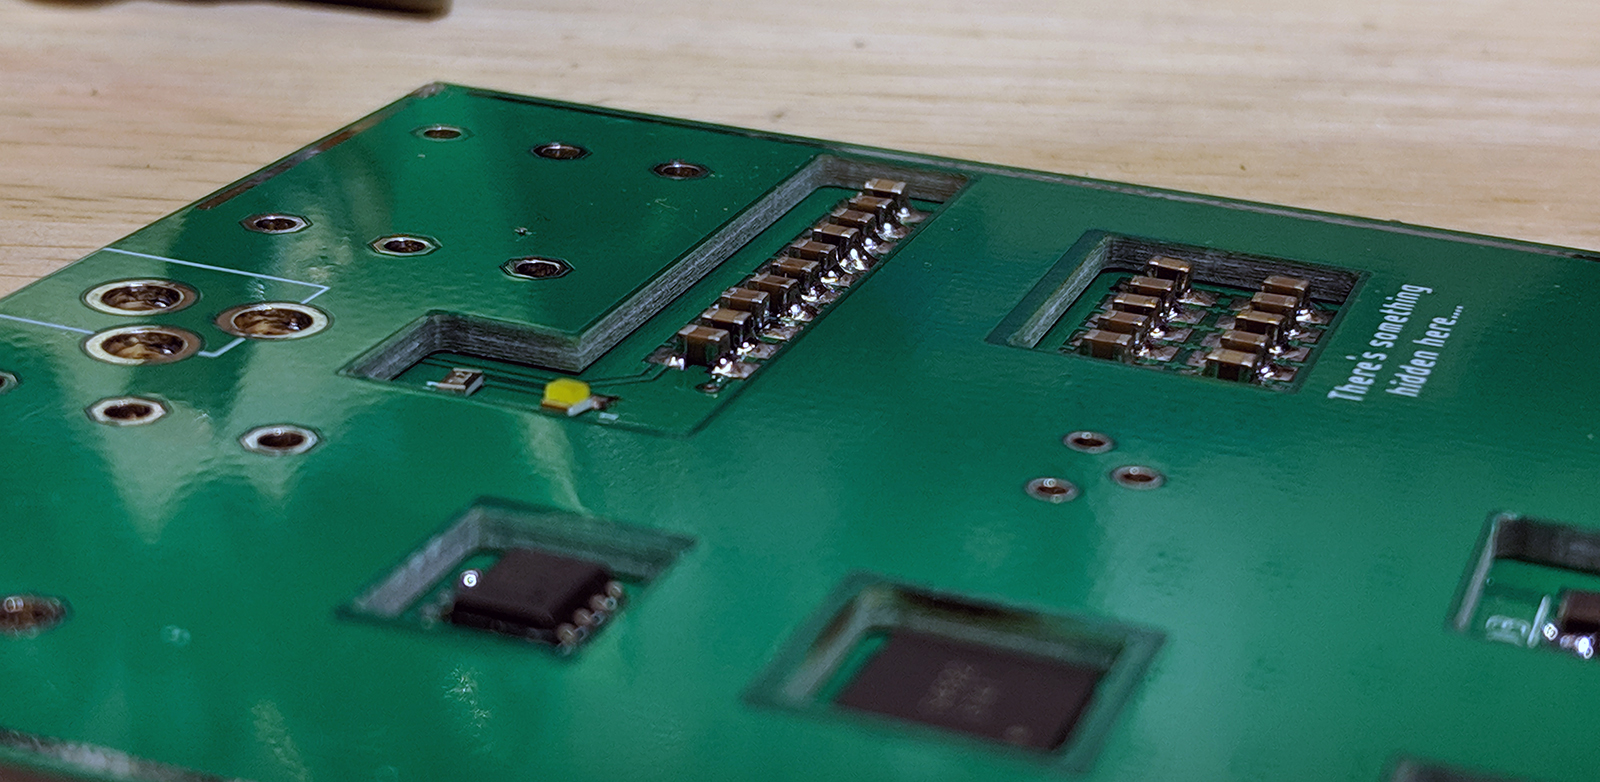 oreo construction hiding your components inside the pcb pcb design pcb assembly stim canada